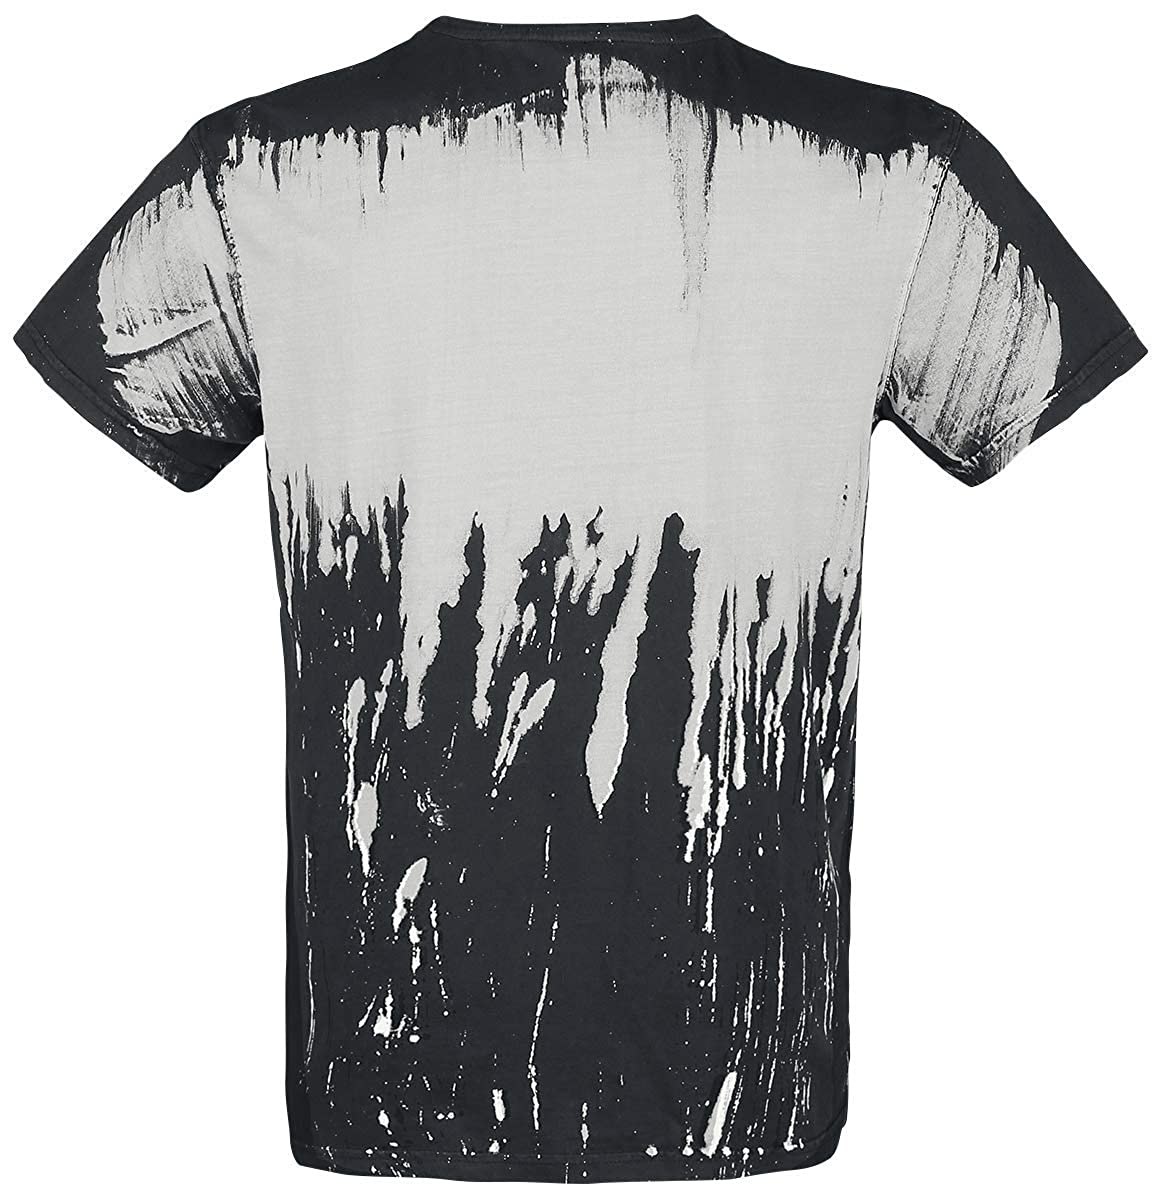 Alchemy T-Shirt The Pact Label T-Shirt 0